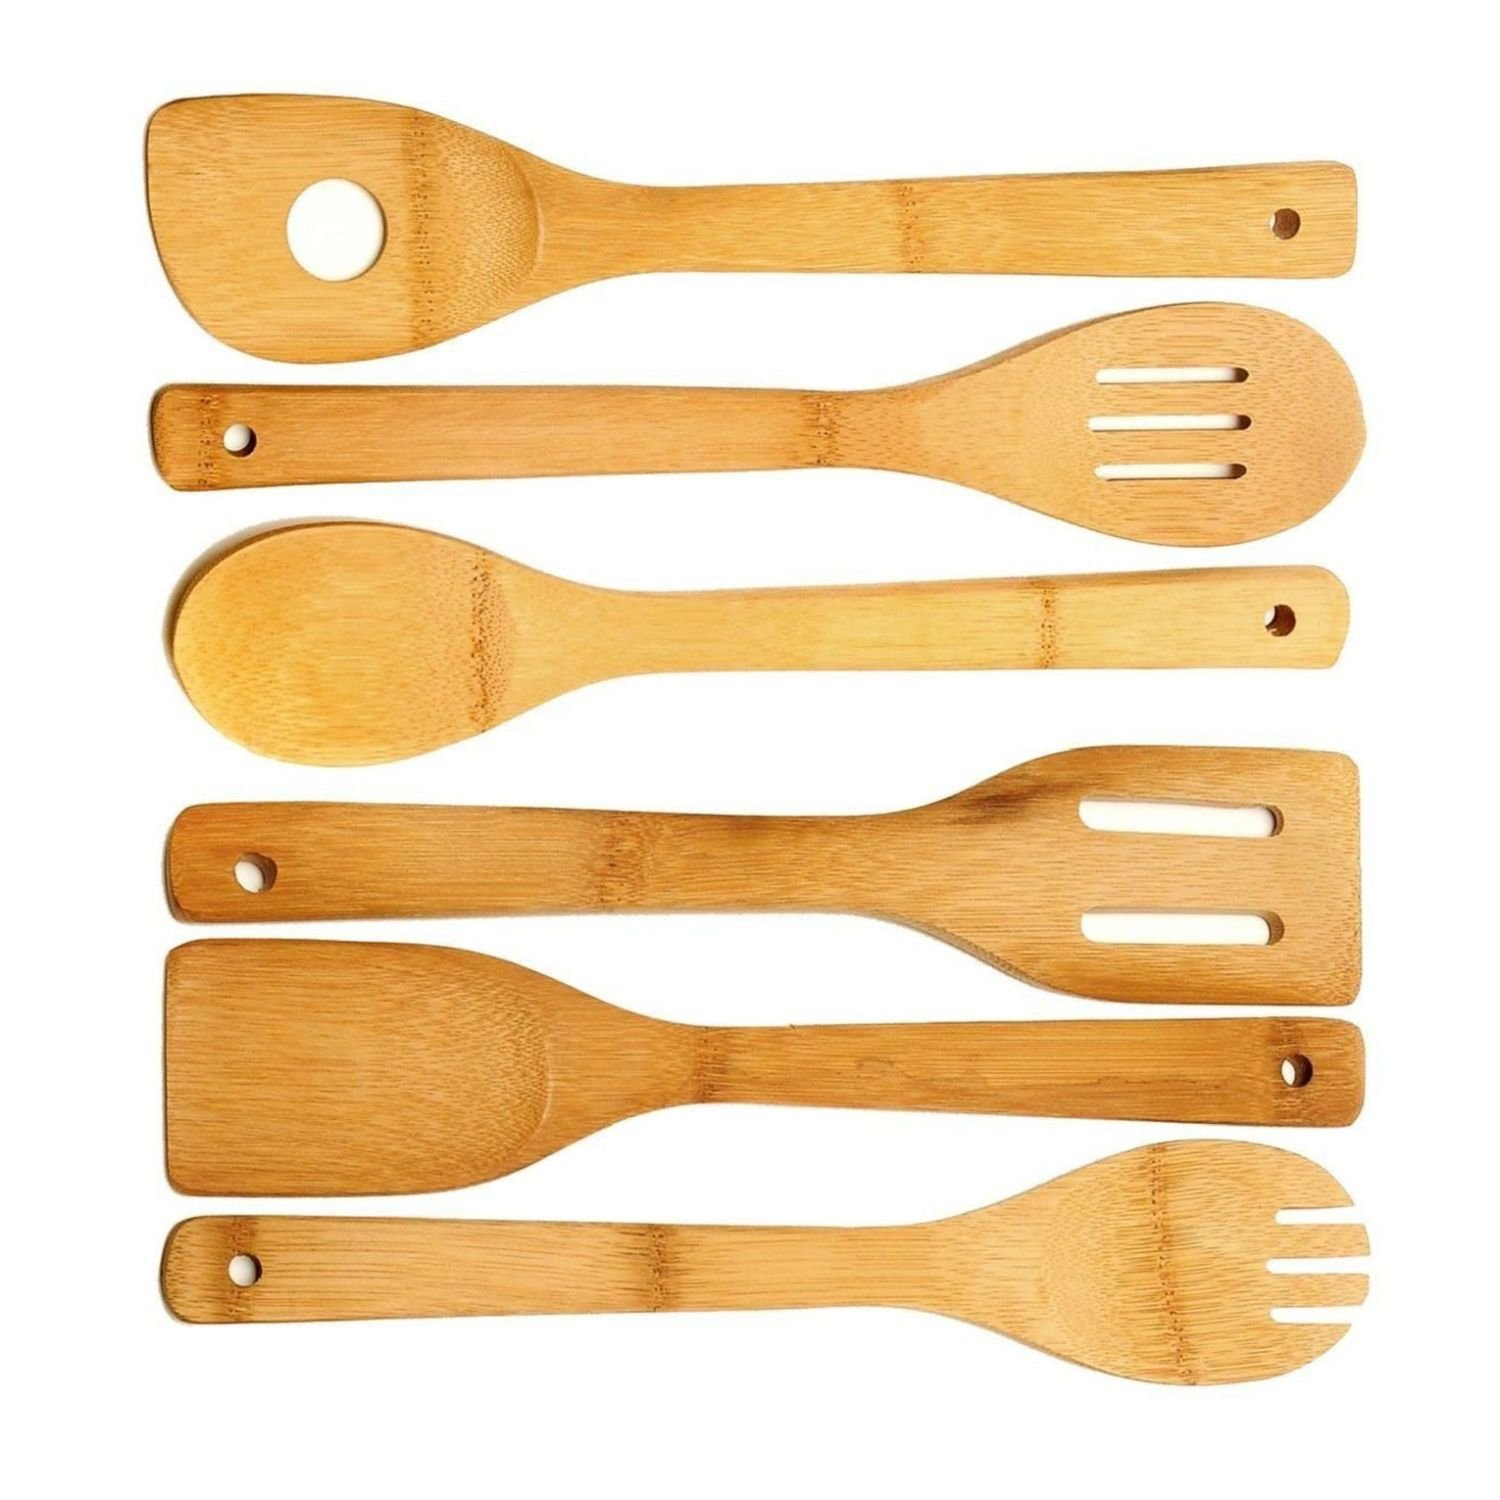 SmarketBuy 6 Piece Wooden Cooking Utensil Set Bamboo Kitchen Spatula Spoons